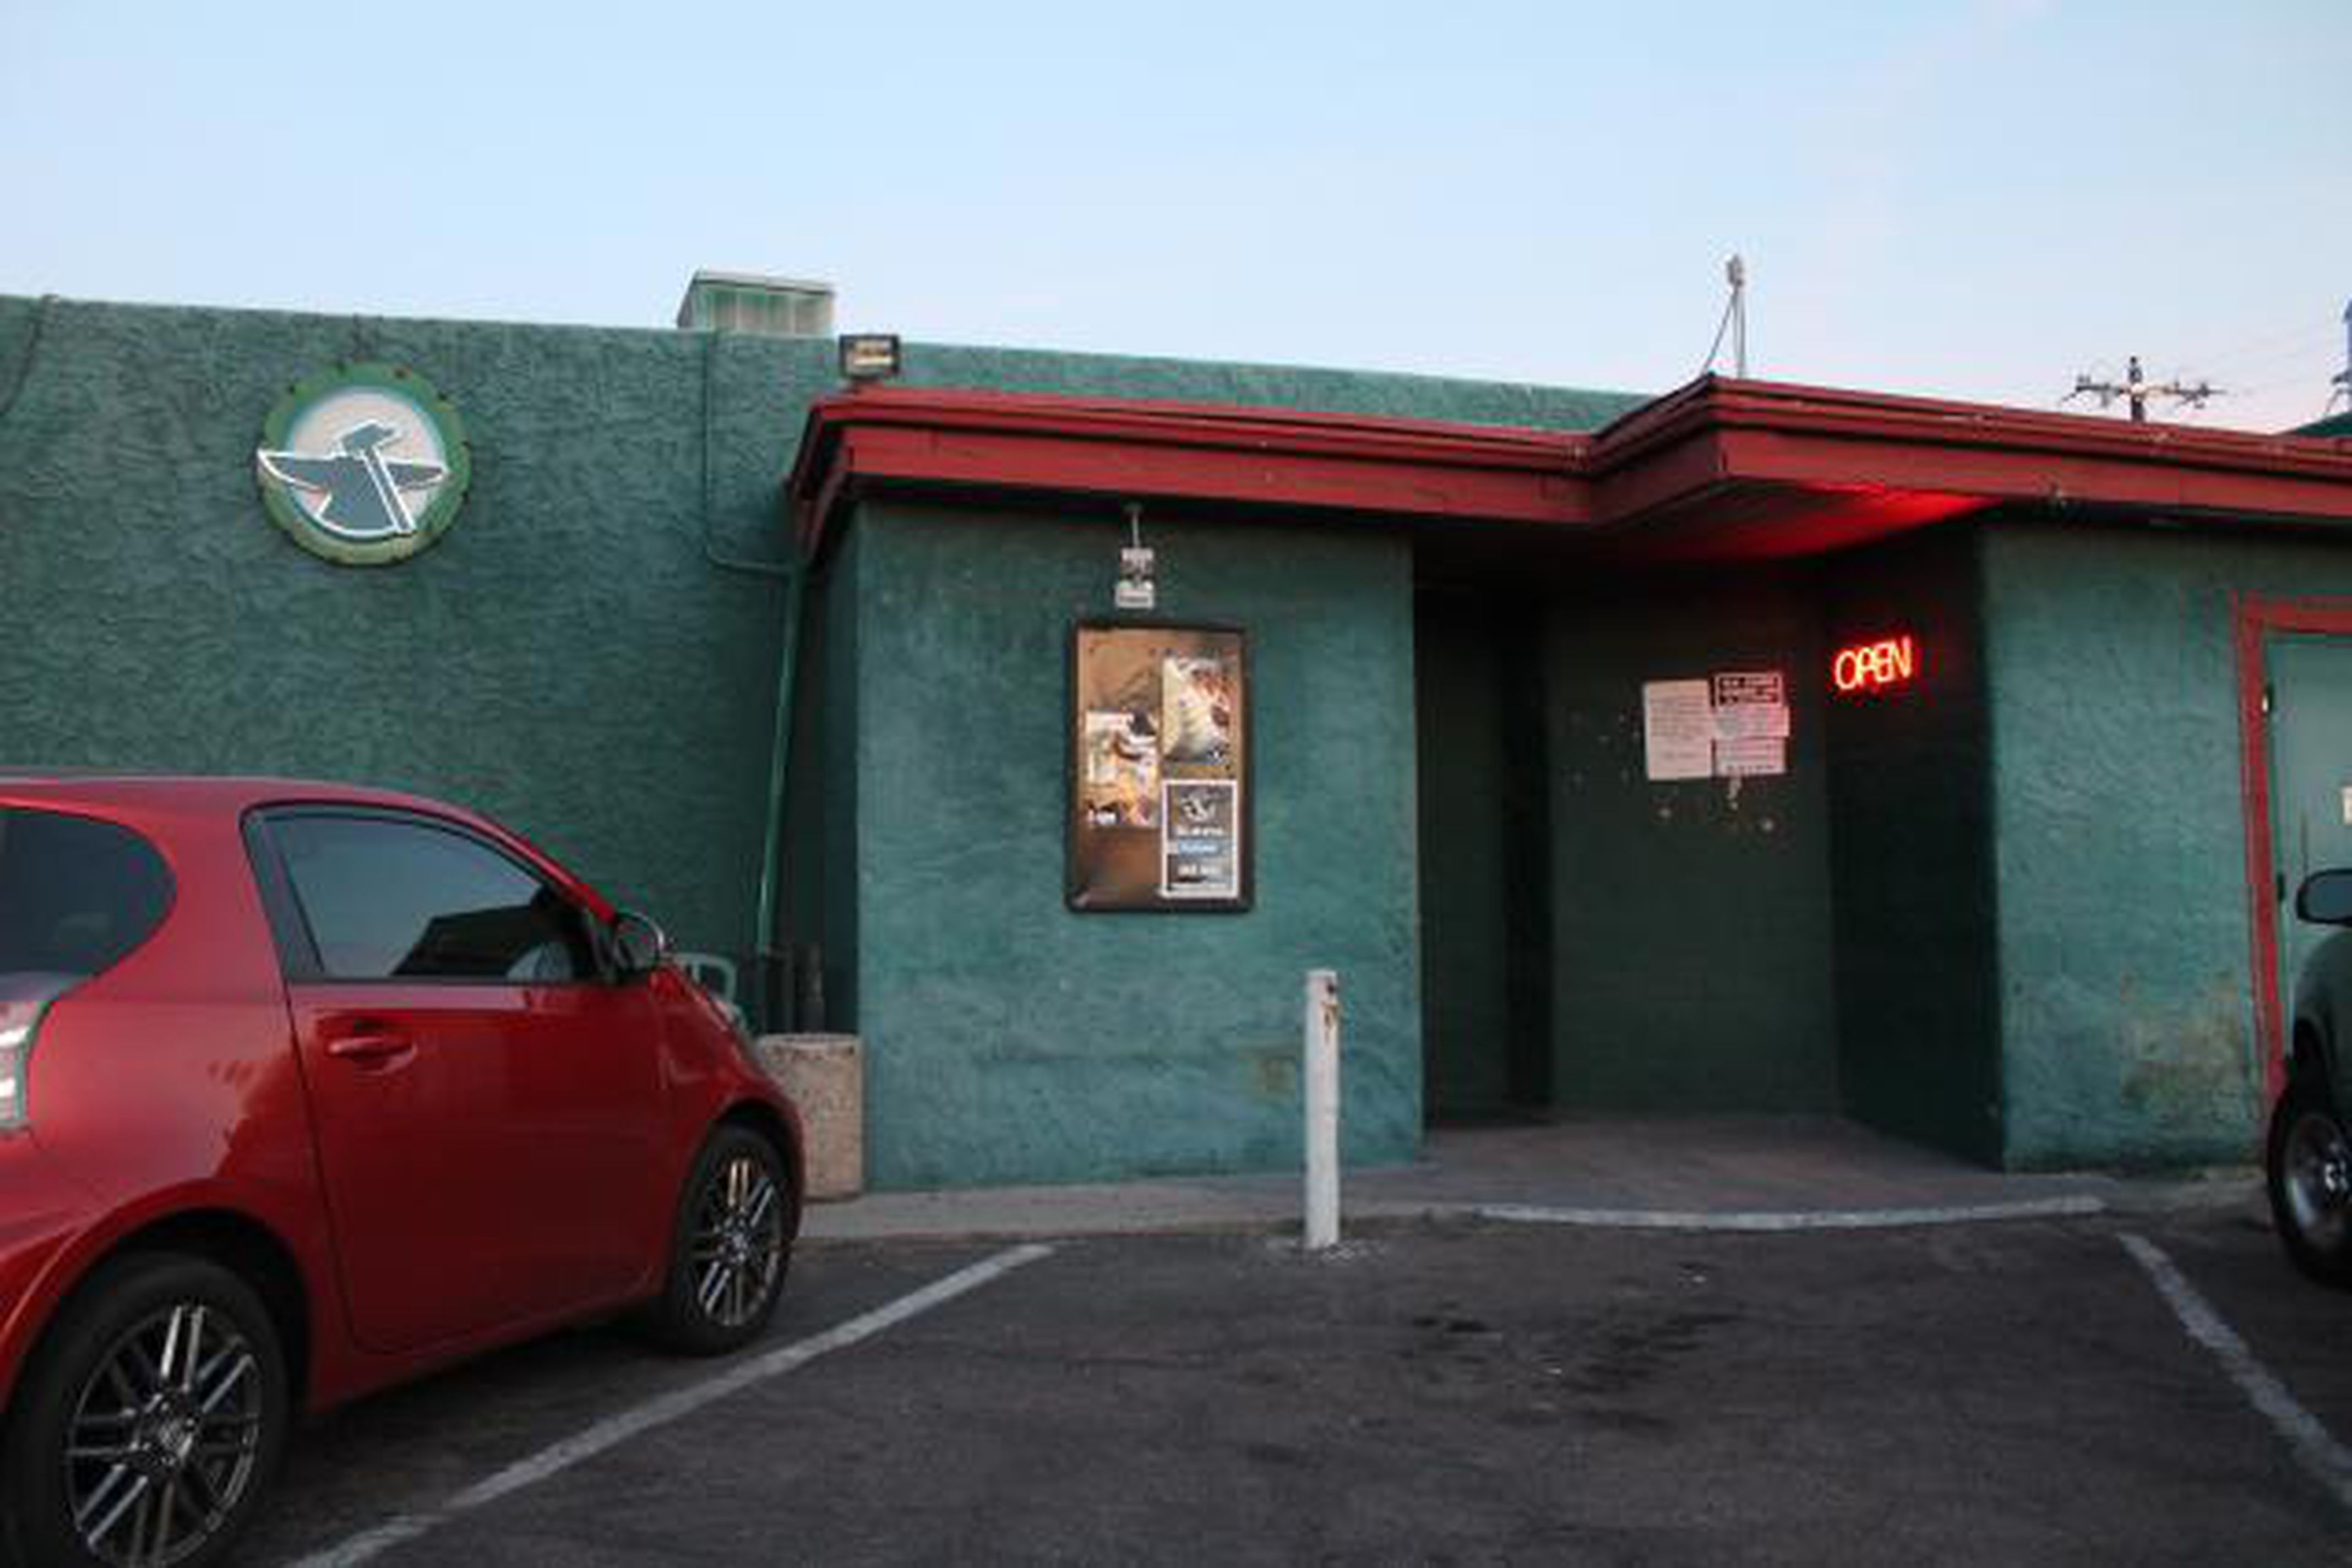 Incognito gay clubs in az